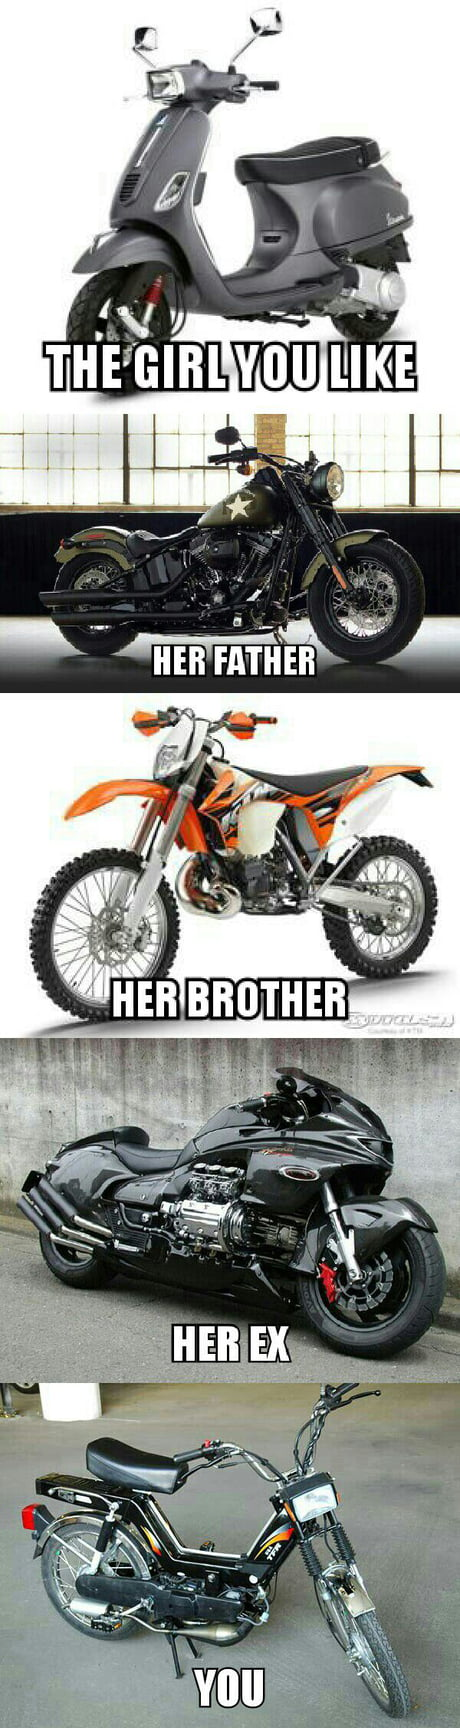 For the Bike Loving Lonely 9gagers.: The,best,free,download